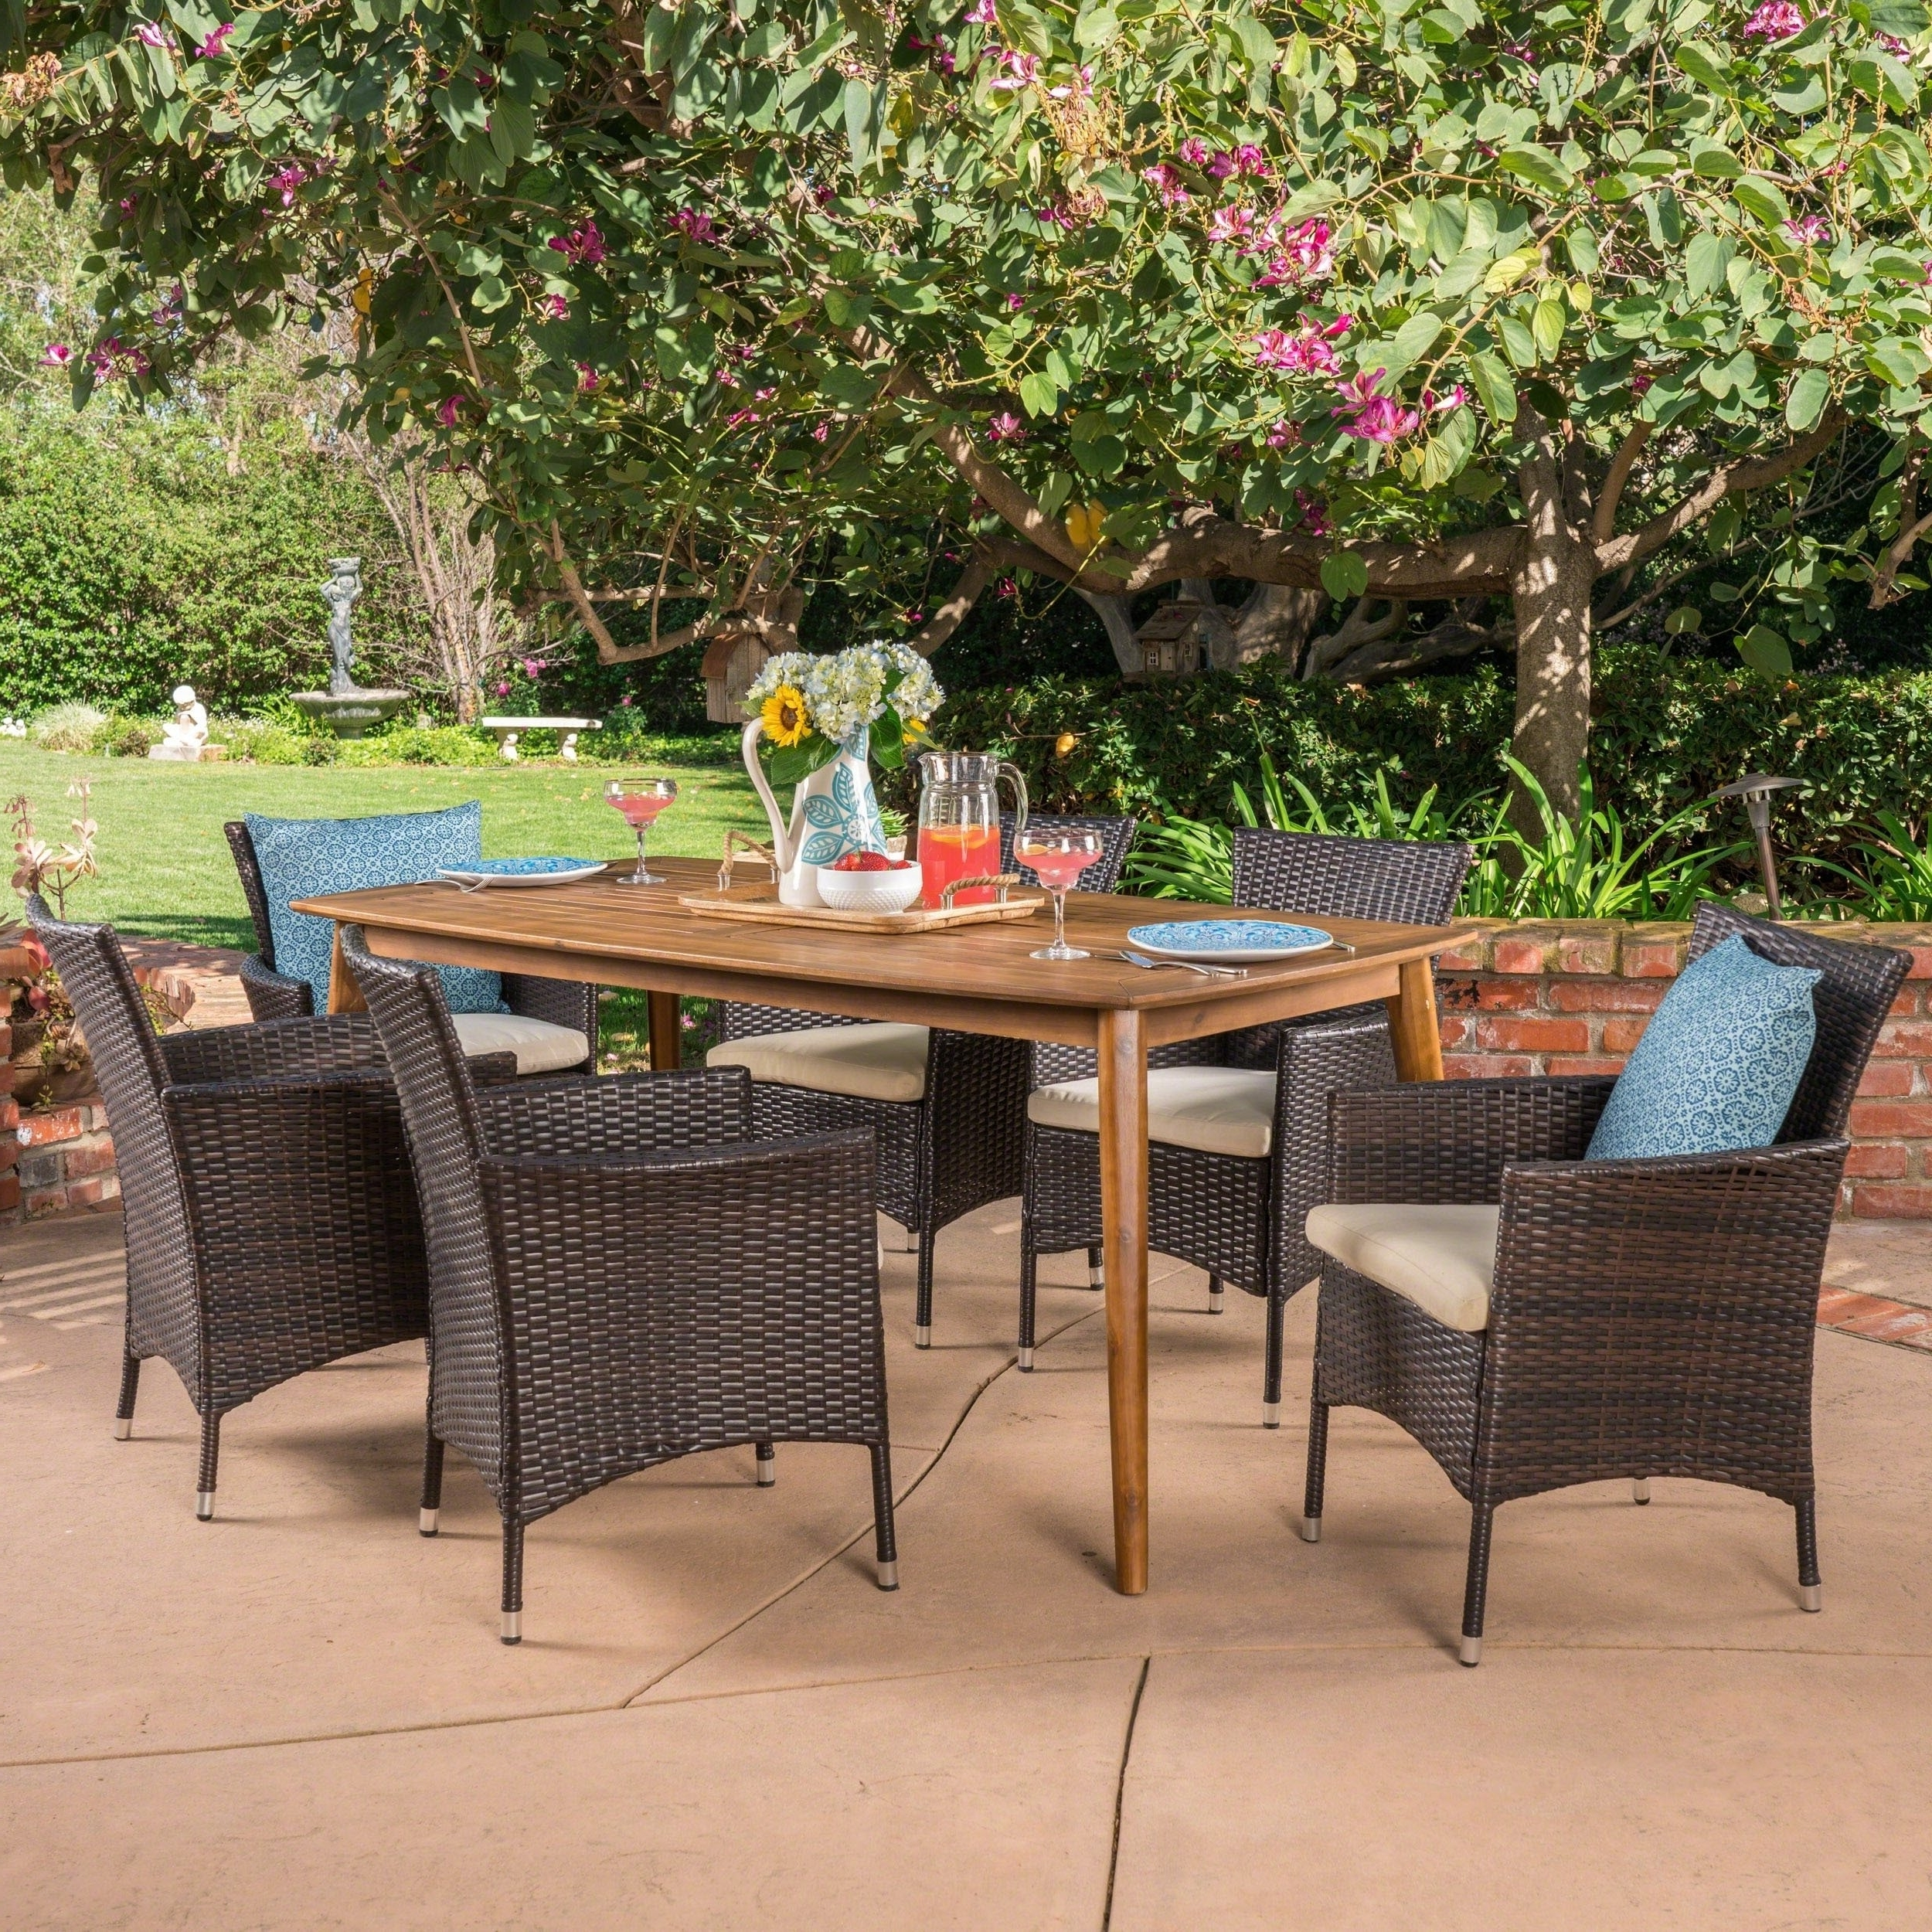 Jaxon 7 Piece Rectangle Dining Sets With Wood Chairs With Regard To Preferred Shop Jaxon Outdoor 7 Piece Multibrown Pe Wicker Dining Set With (View 6 of 25)